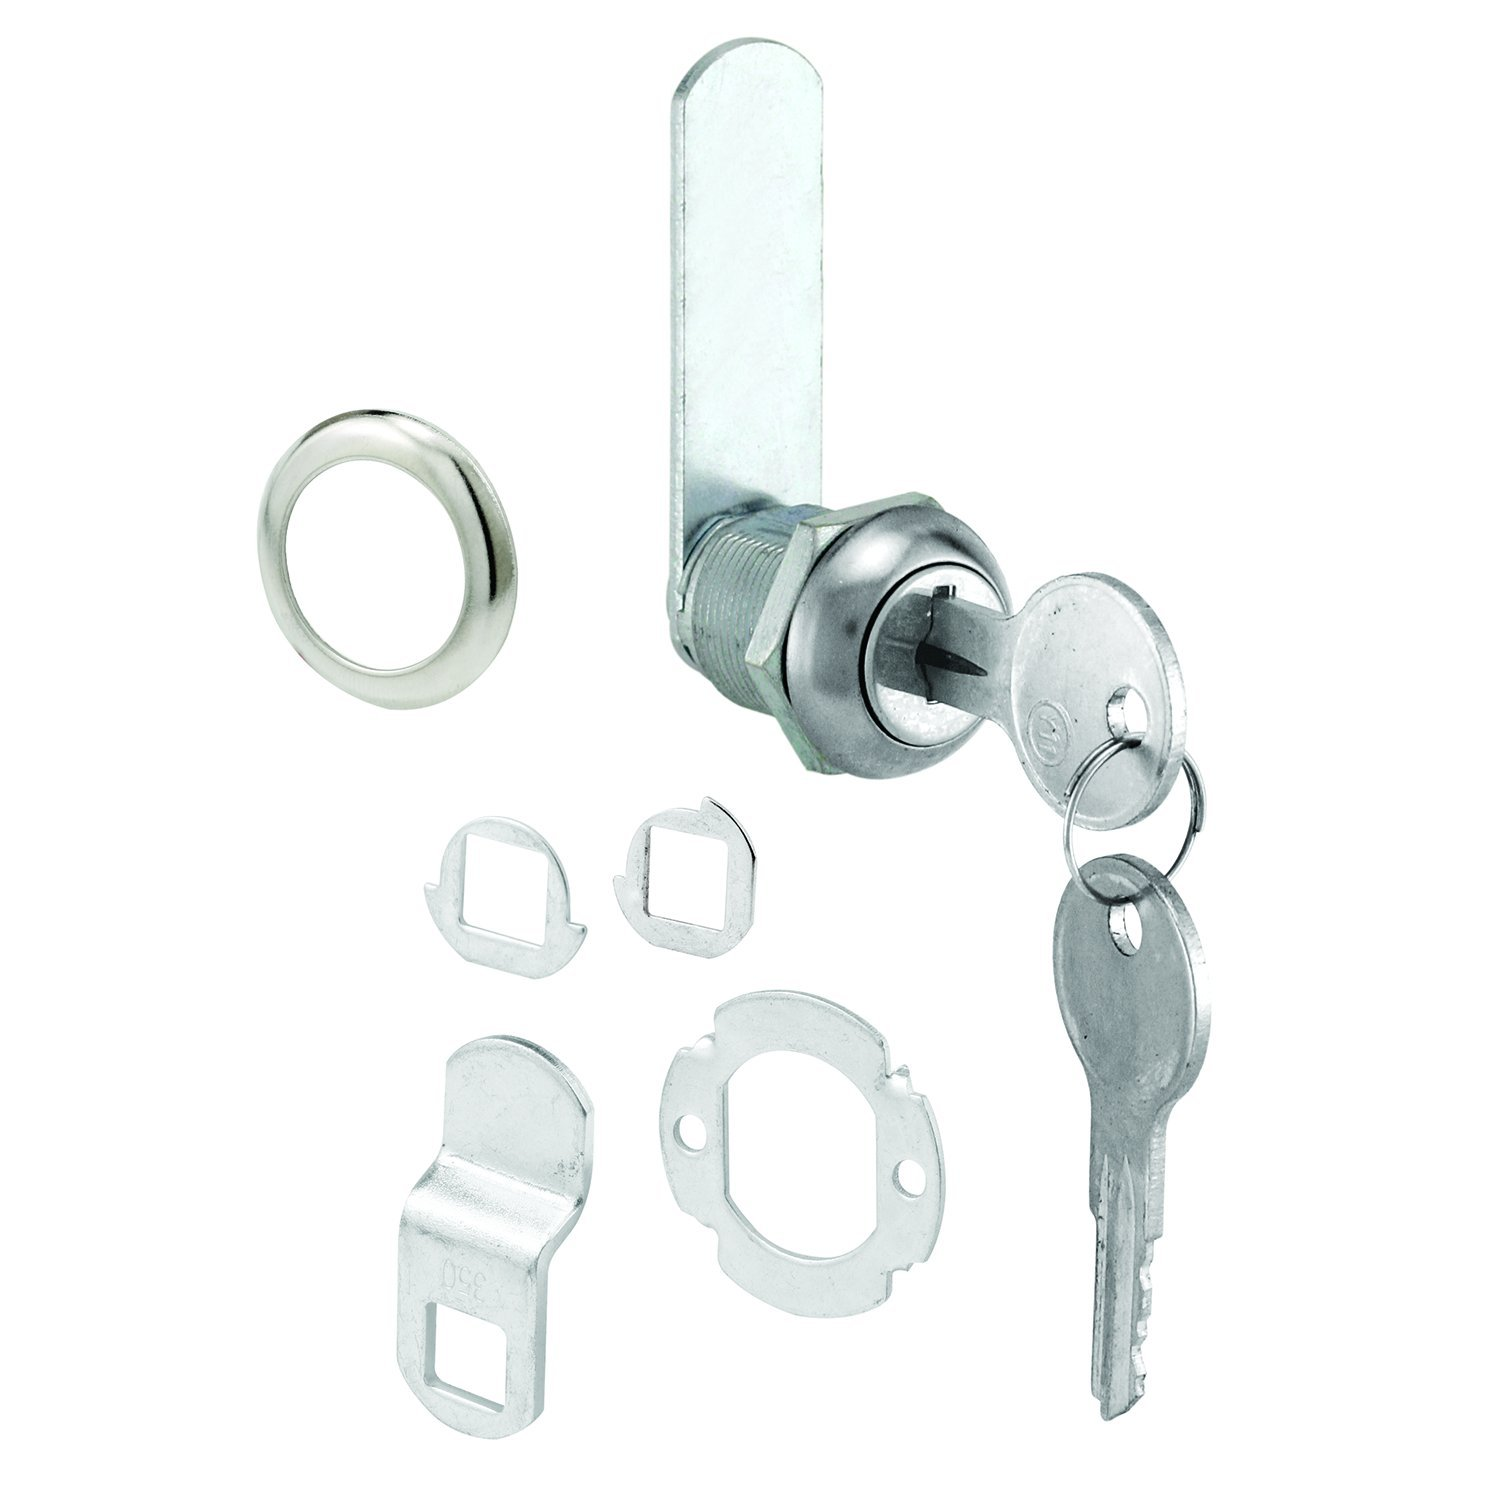 Slide-Co 223271 RV and Mobile Home Cylinder Lock, Keyed, Zinc Plated Steel/Diecast